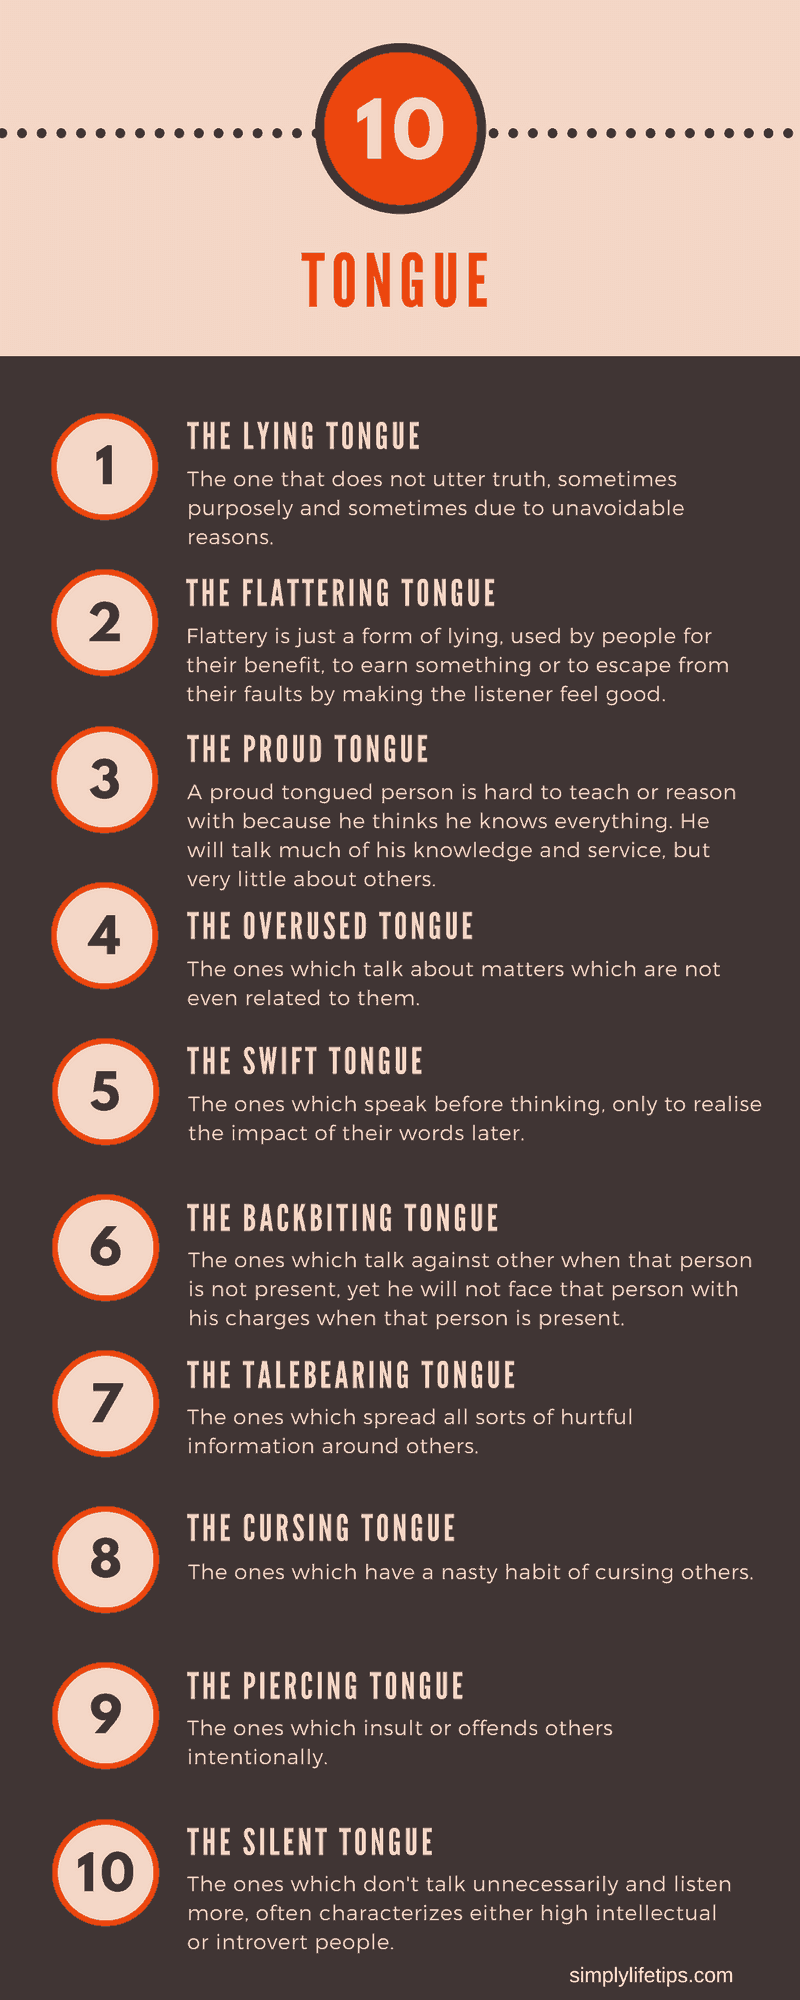 Tongue infographic